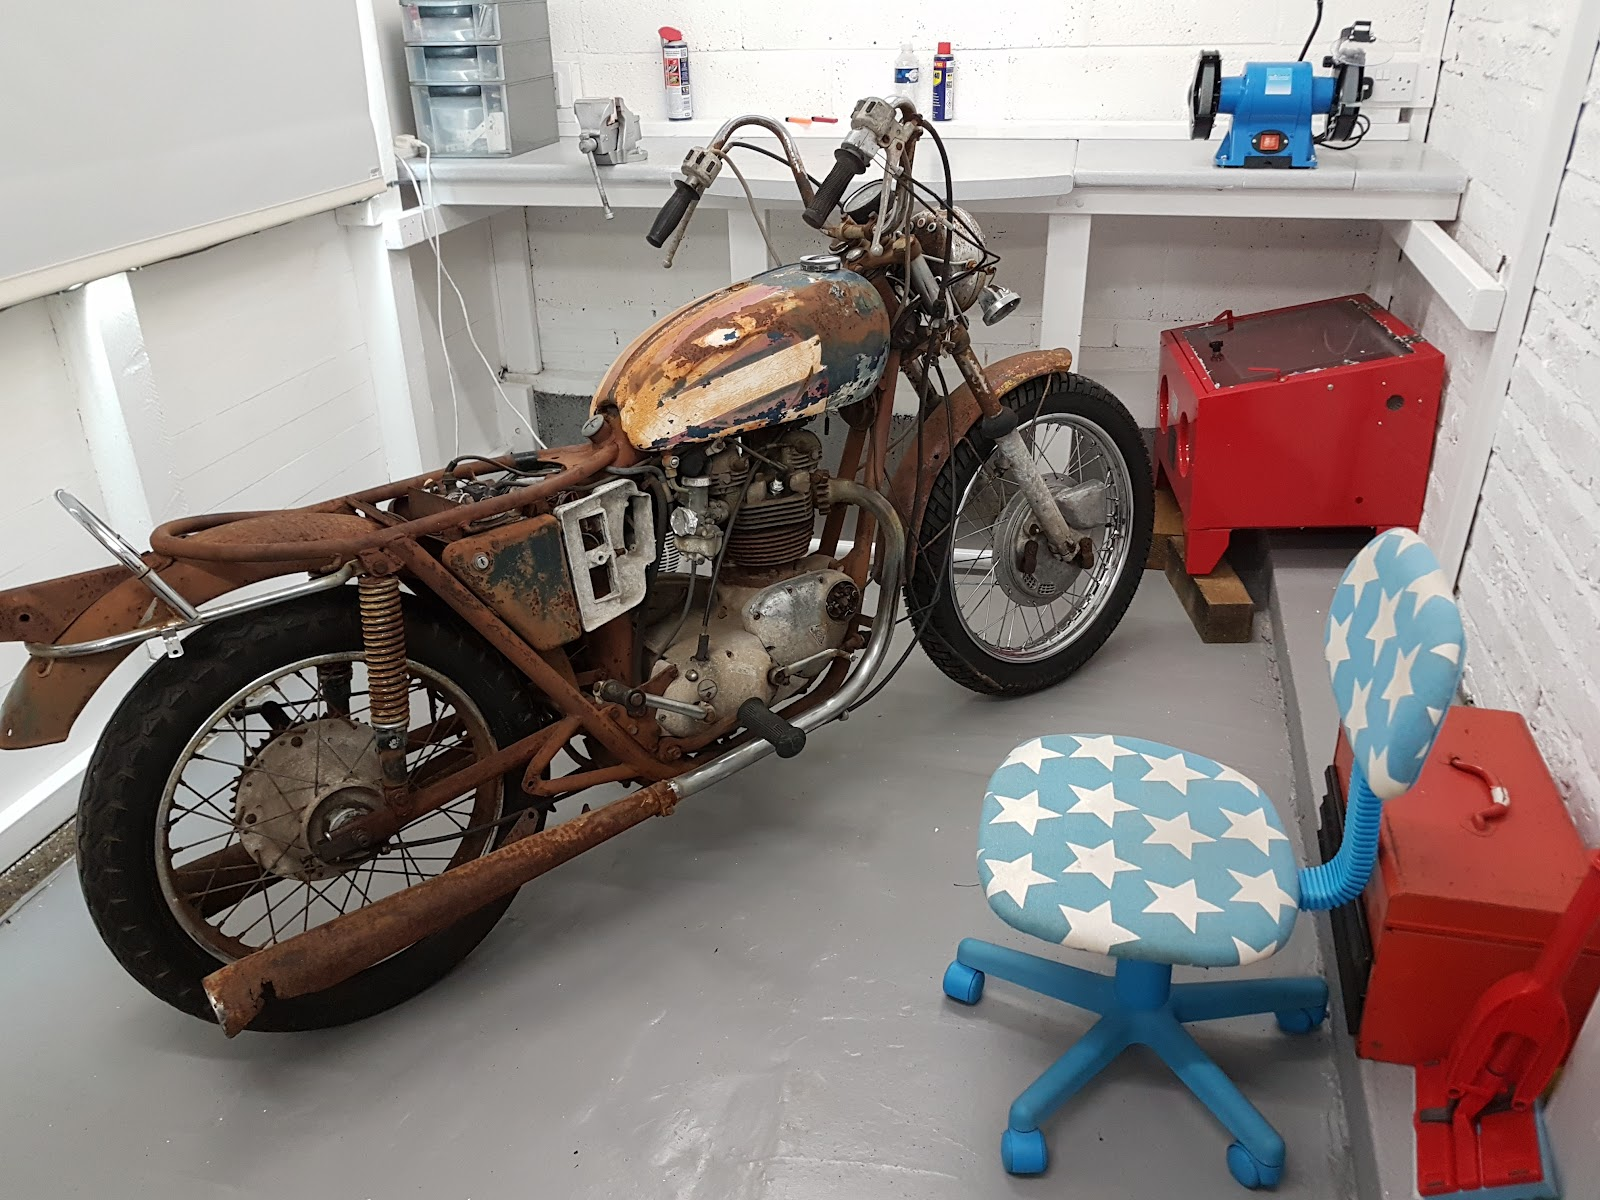 My new bonneville T120 in its new workshop home ready to be worked on.